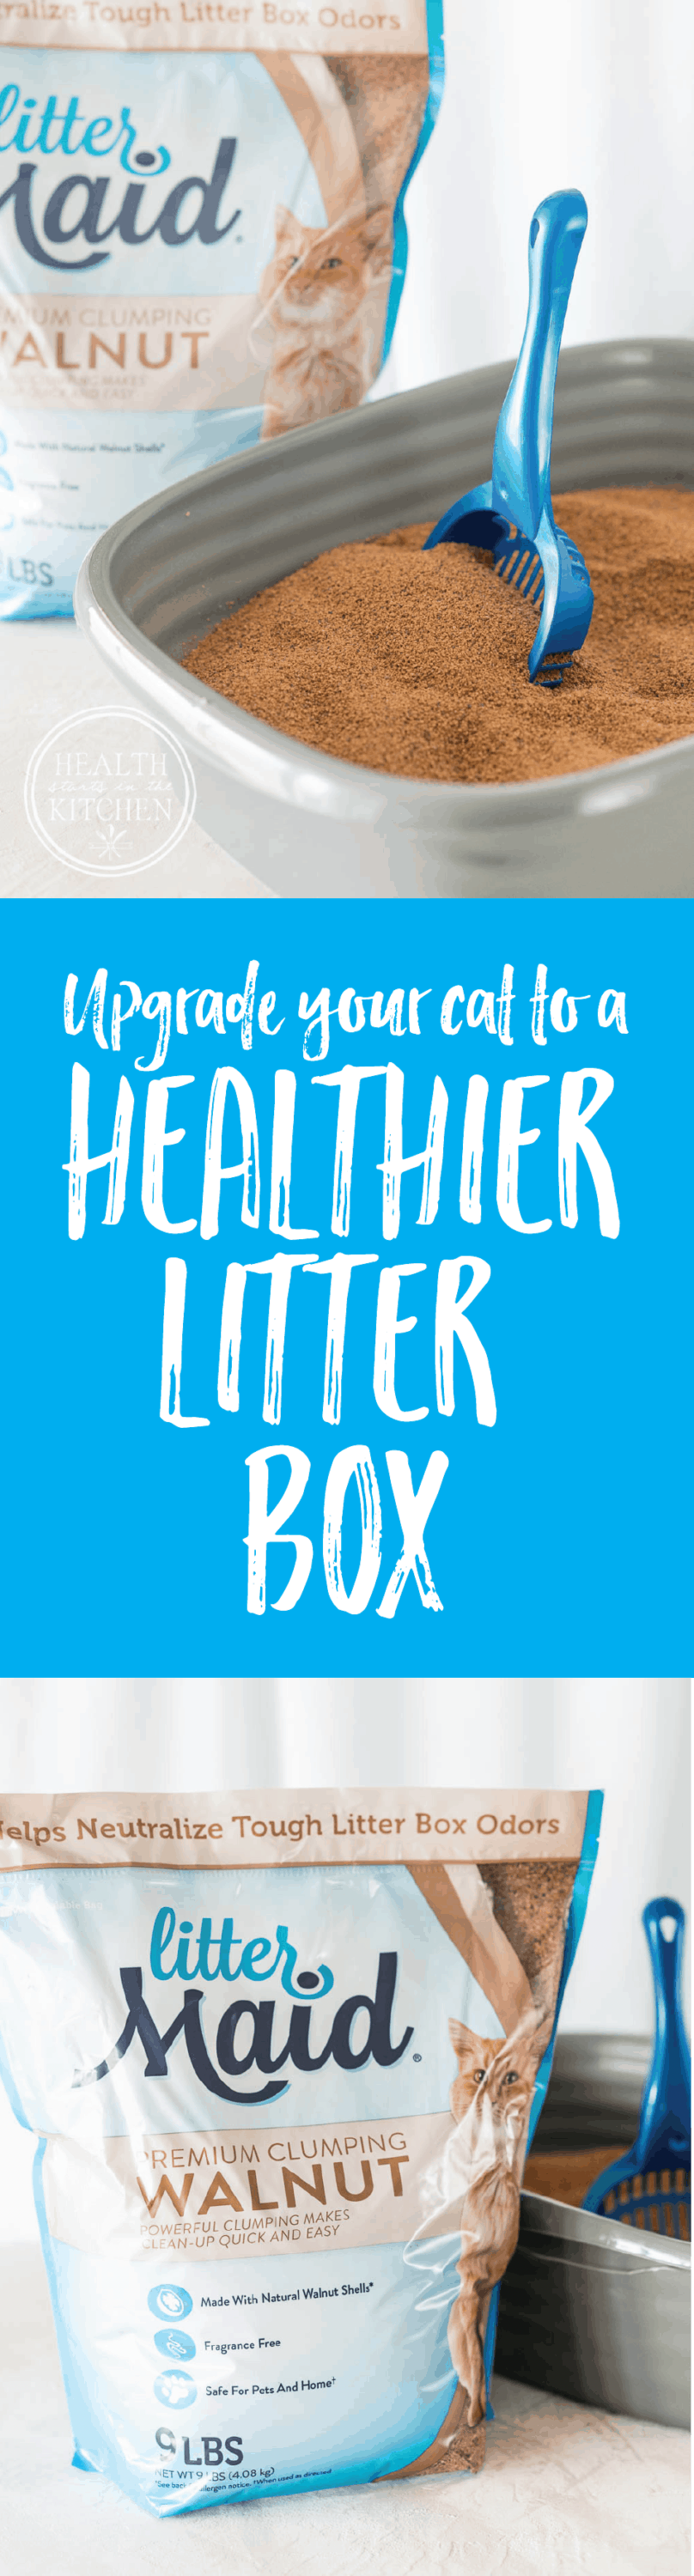 How to Upgrade to a Healthier Litter Box, even if your cat is old and picky!